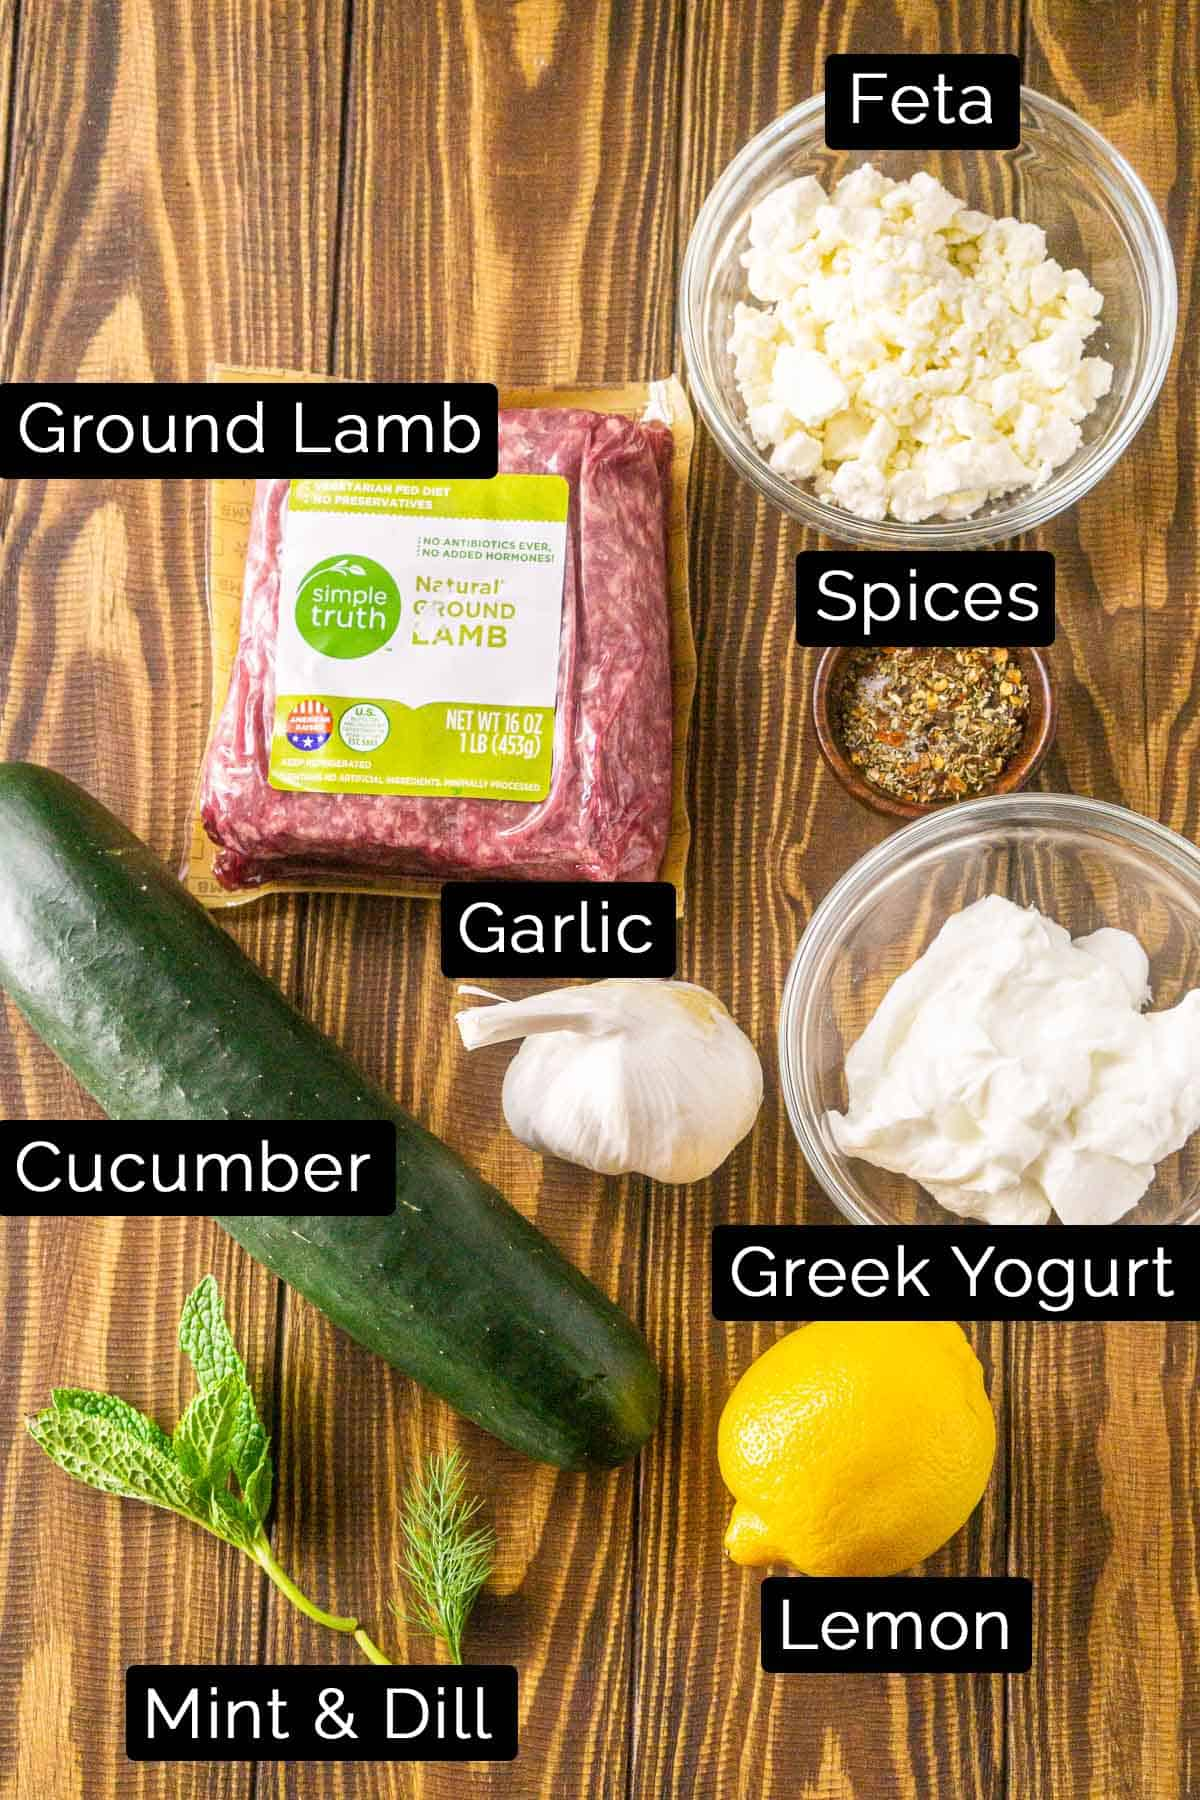 The minted lamb burger ingredients with black and white labels on a wooden board.